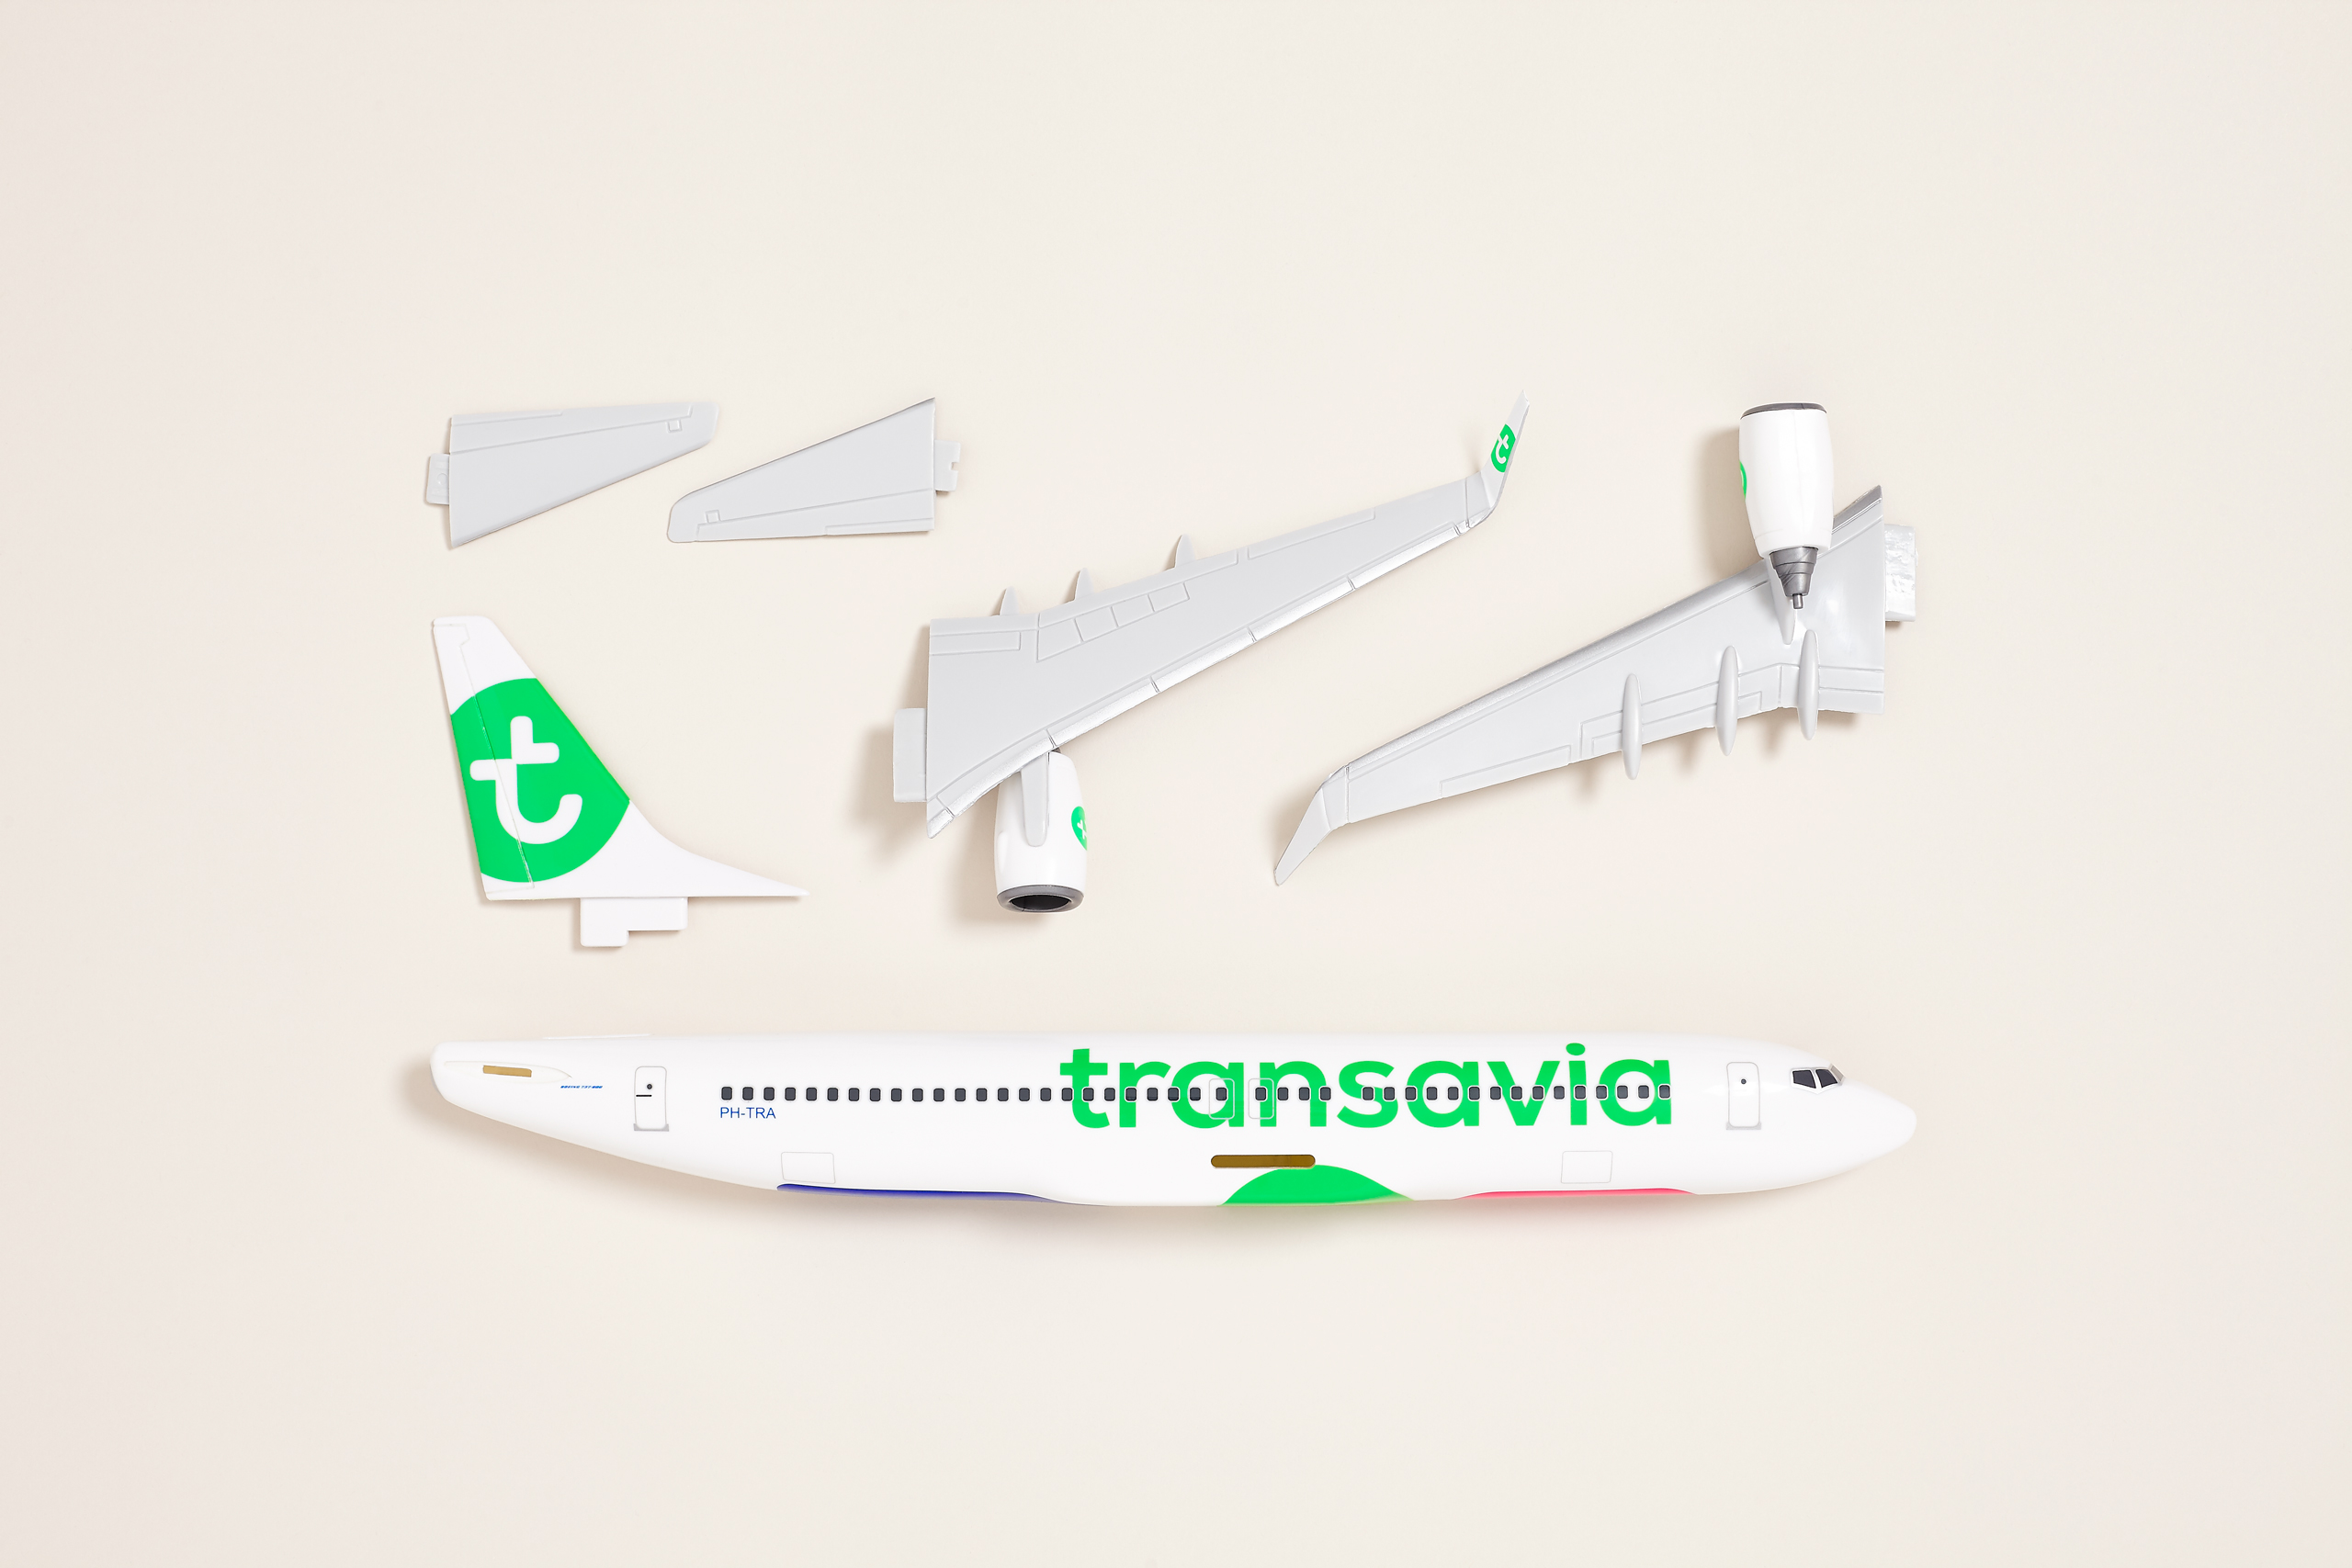 Transavia scale model Boeing 737 pieces